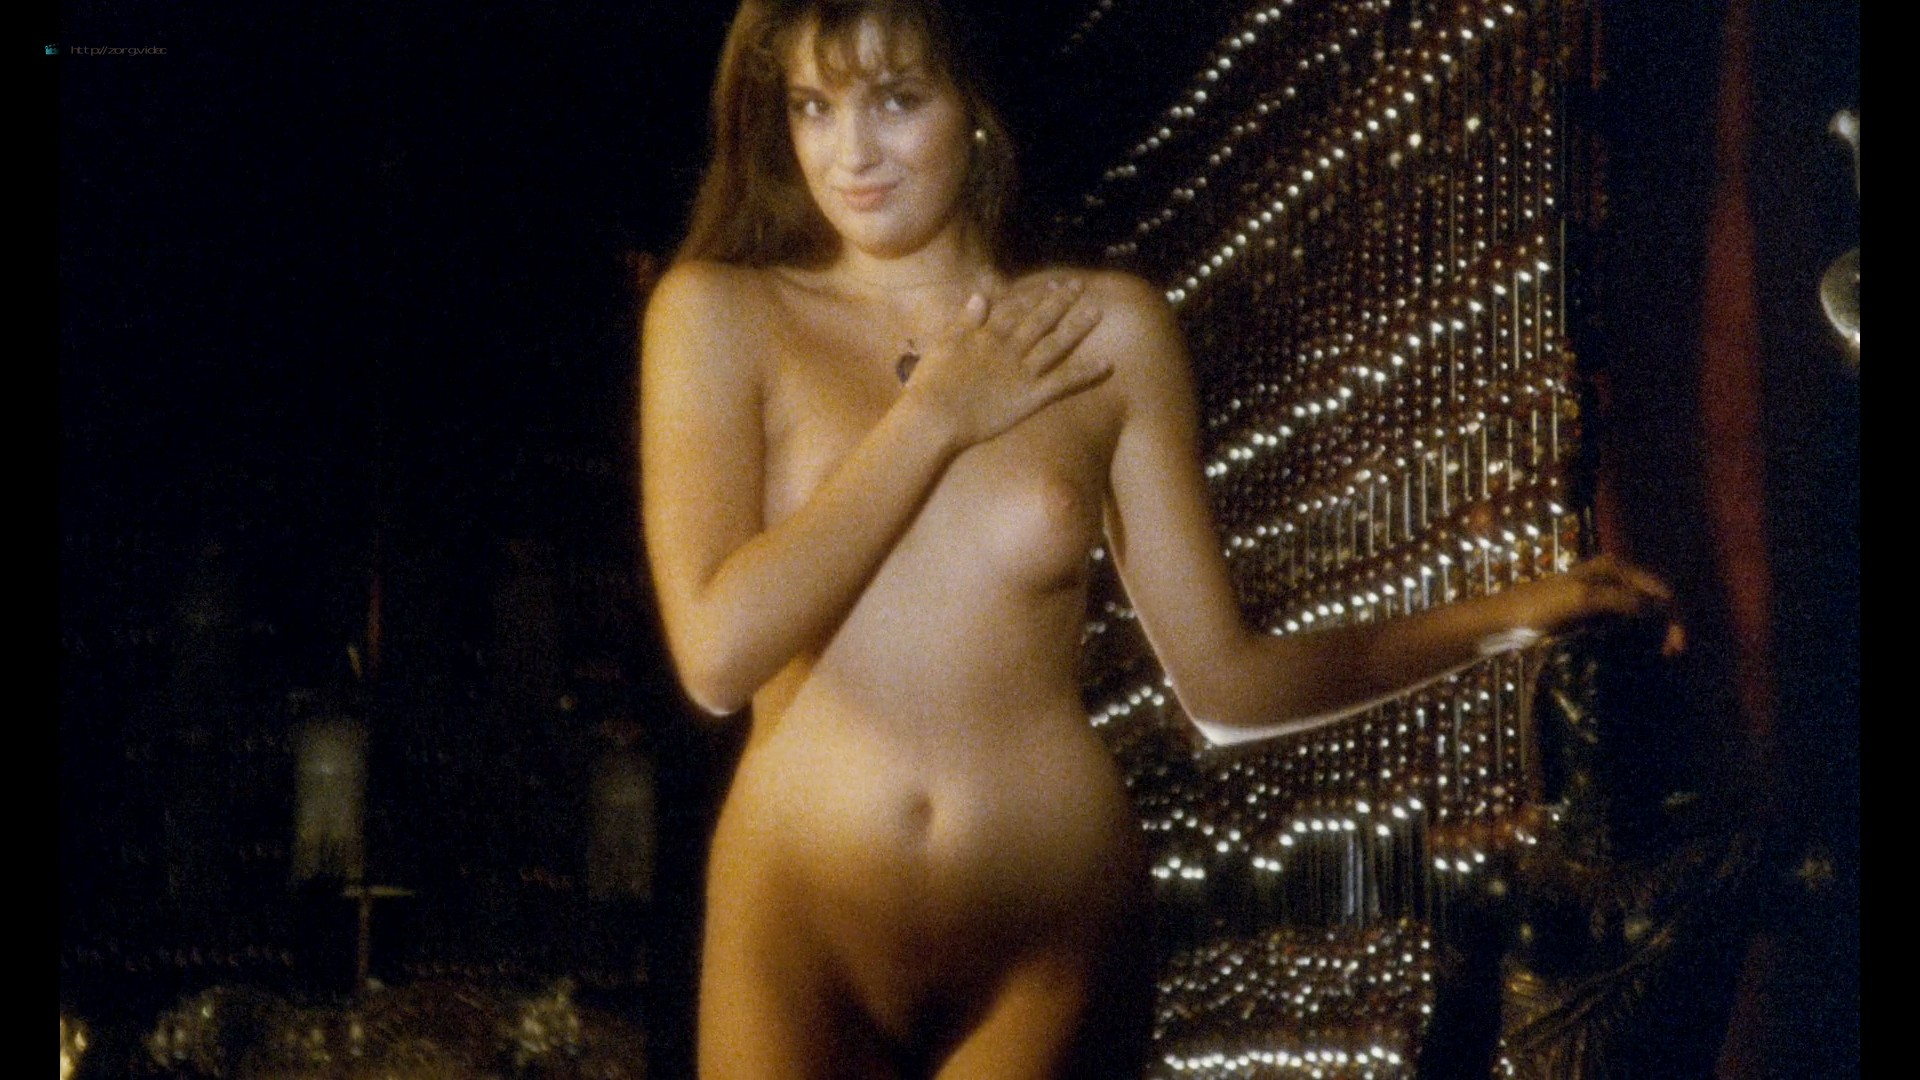 Josephine Jacqueline Jones nude full frontal Florence Guérin and others nude sex too - Black Venus (1983) HD 1080p Web (5)